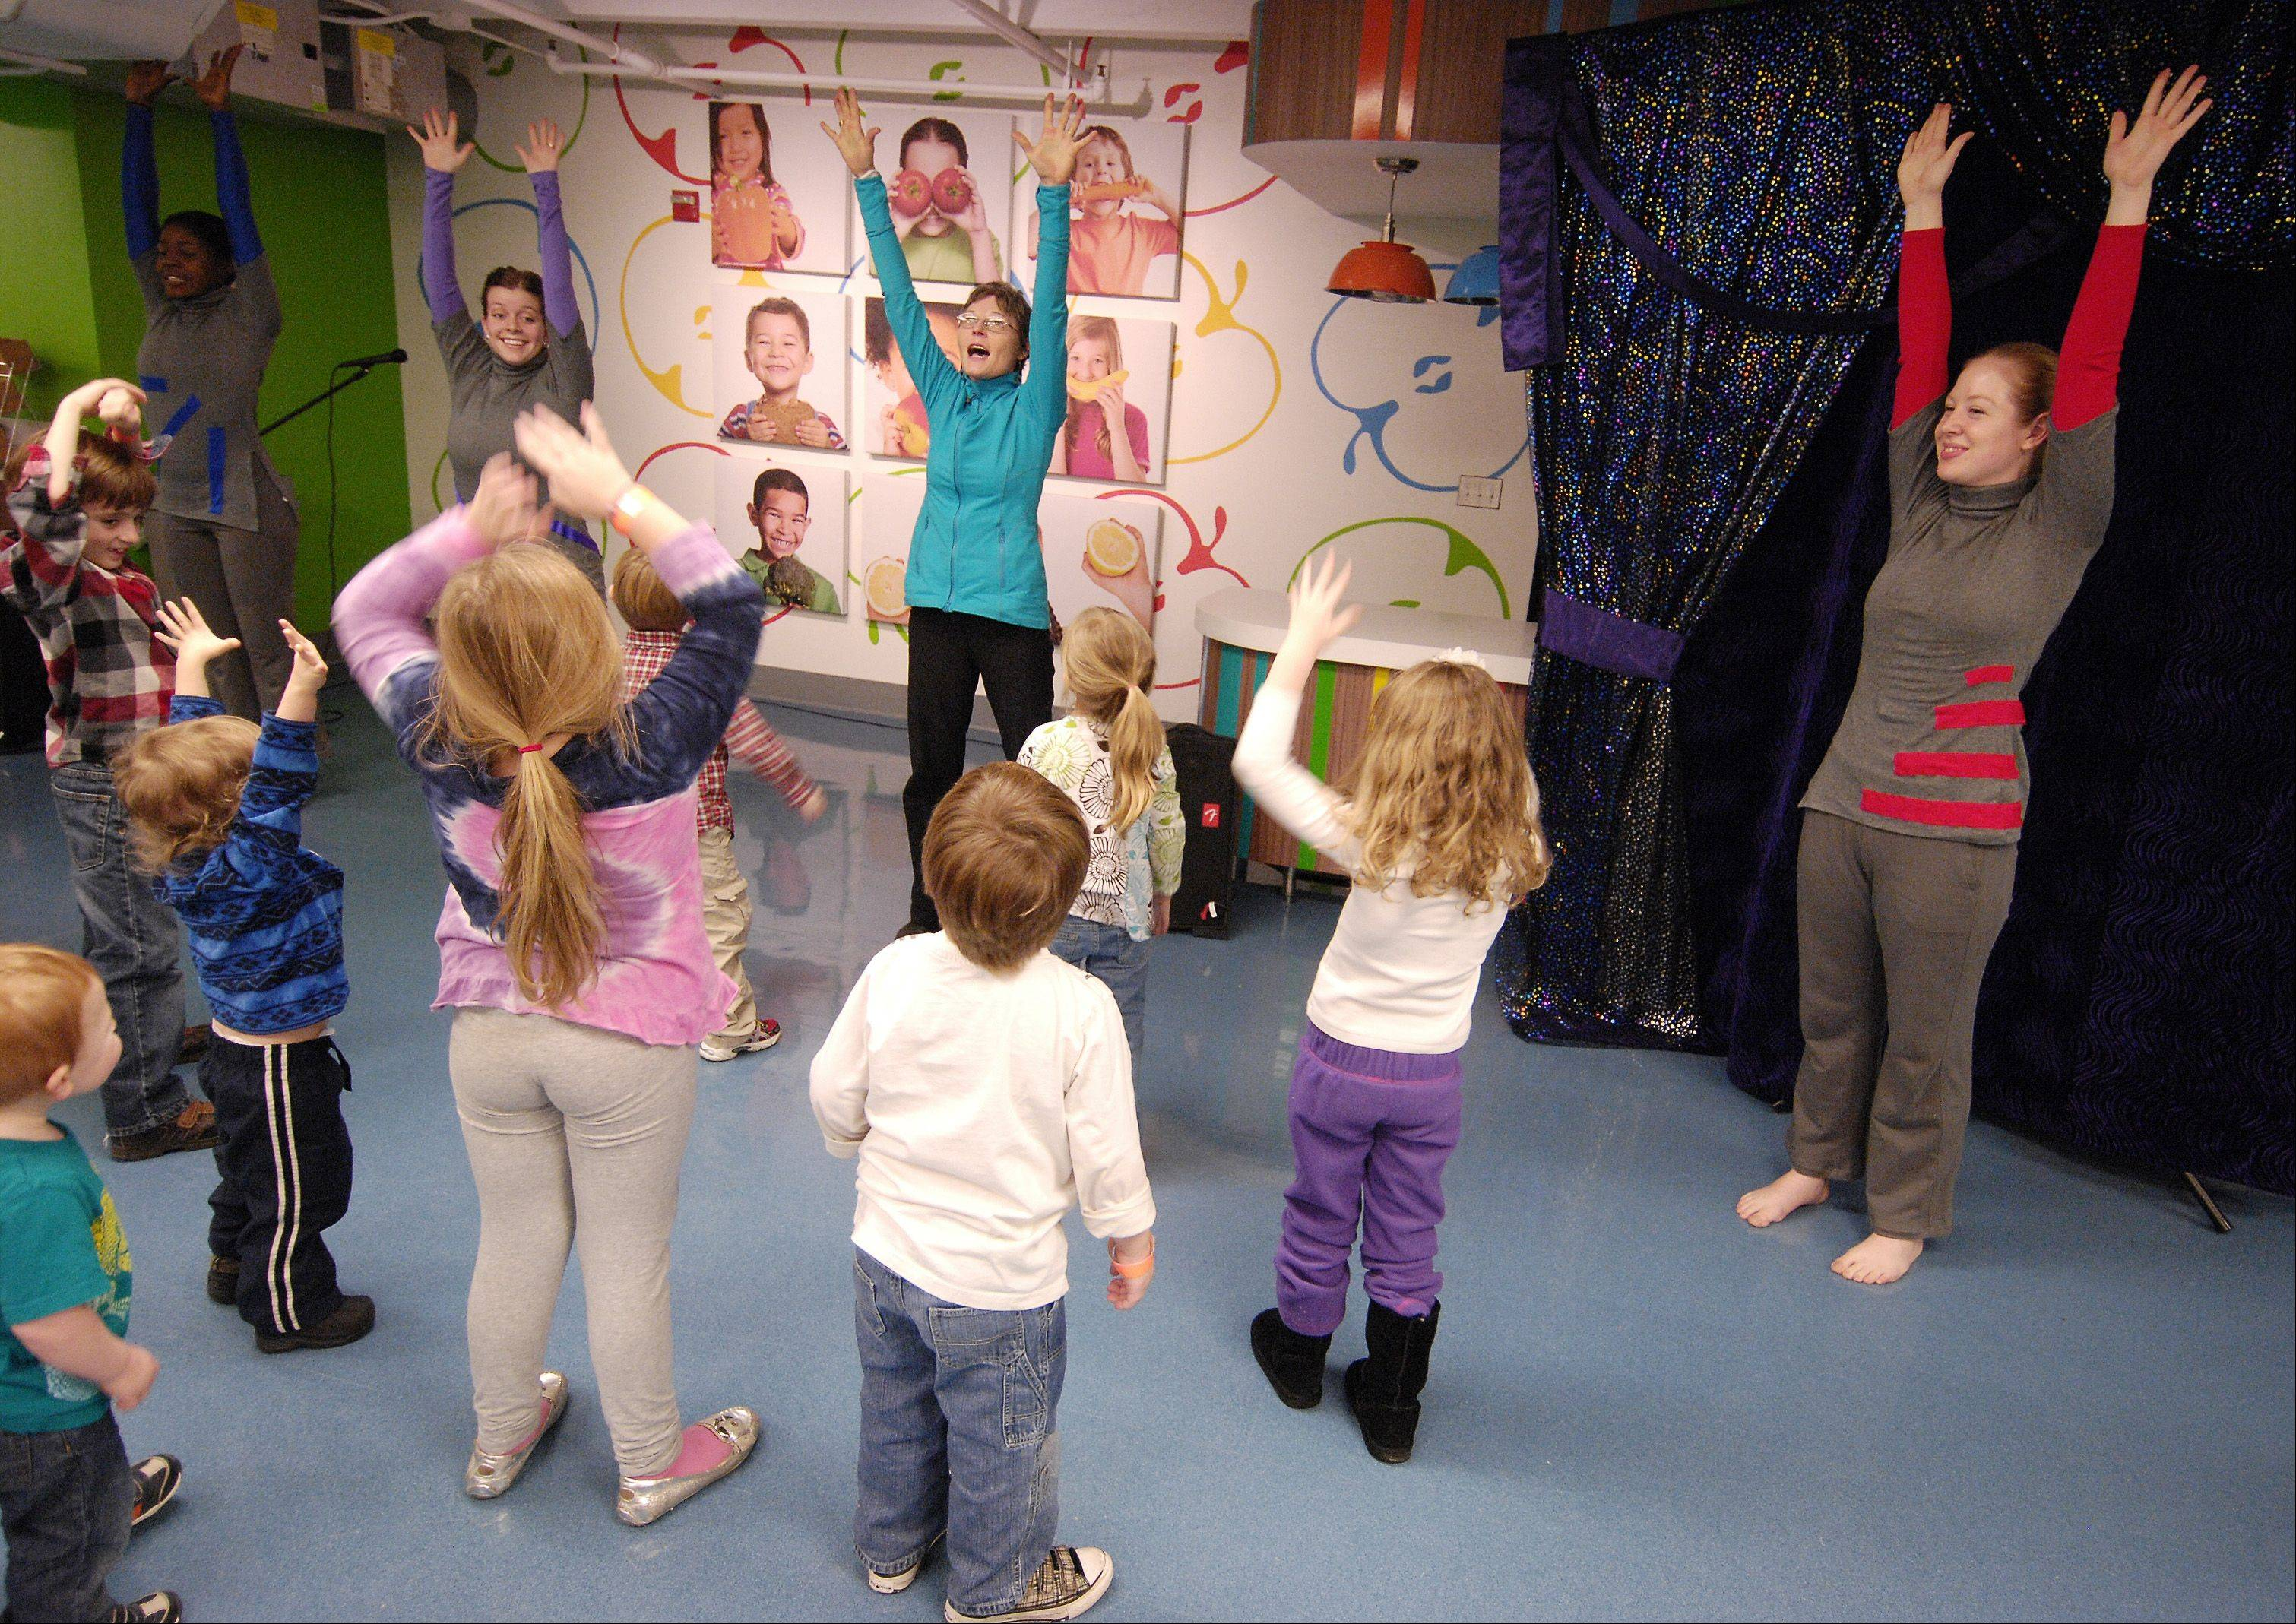 Lin Shook, of Perceptual Motion Dance Company, leads children in some interactive activities during a performance Sunday at the DuPage Children's Museum in Naperville.